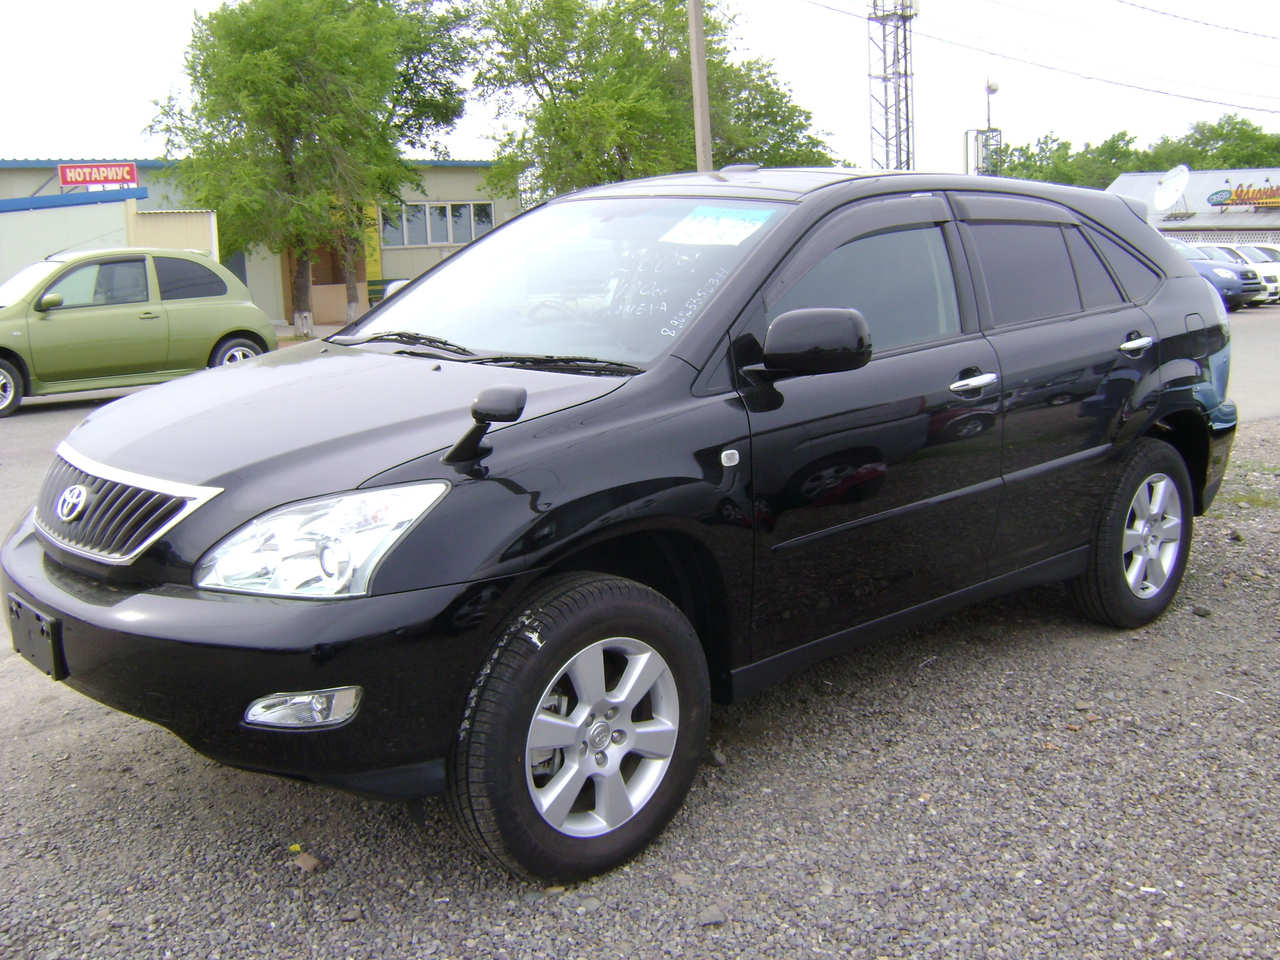 2009 Toyota Harrier Photos 2 4 Gasoline Ff Automatic